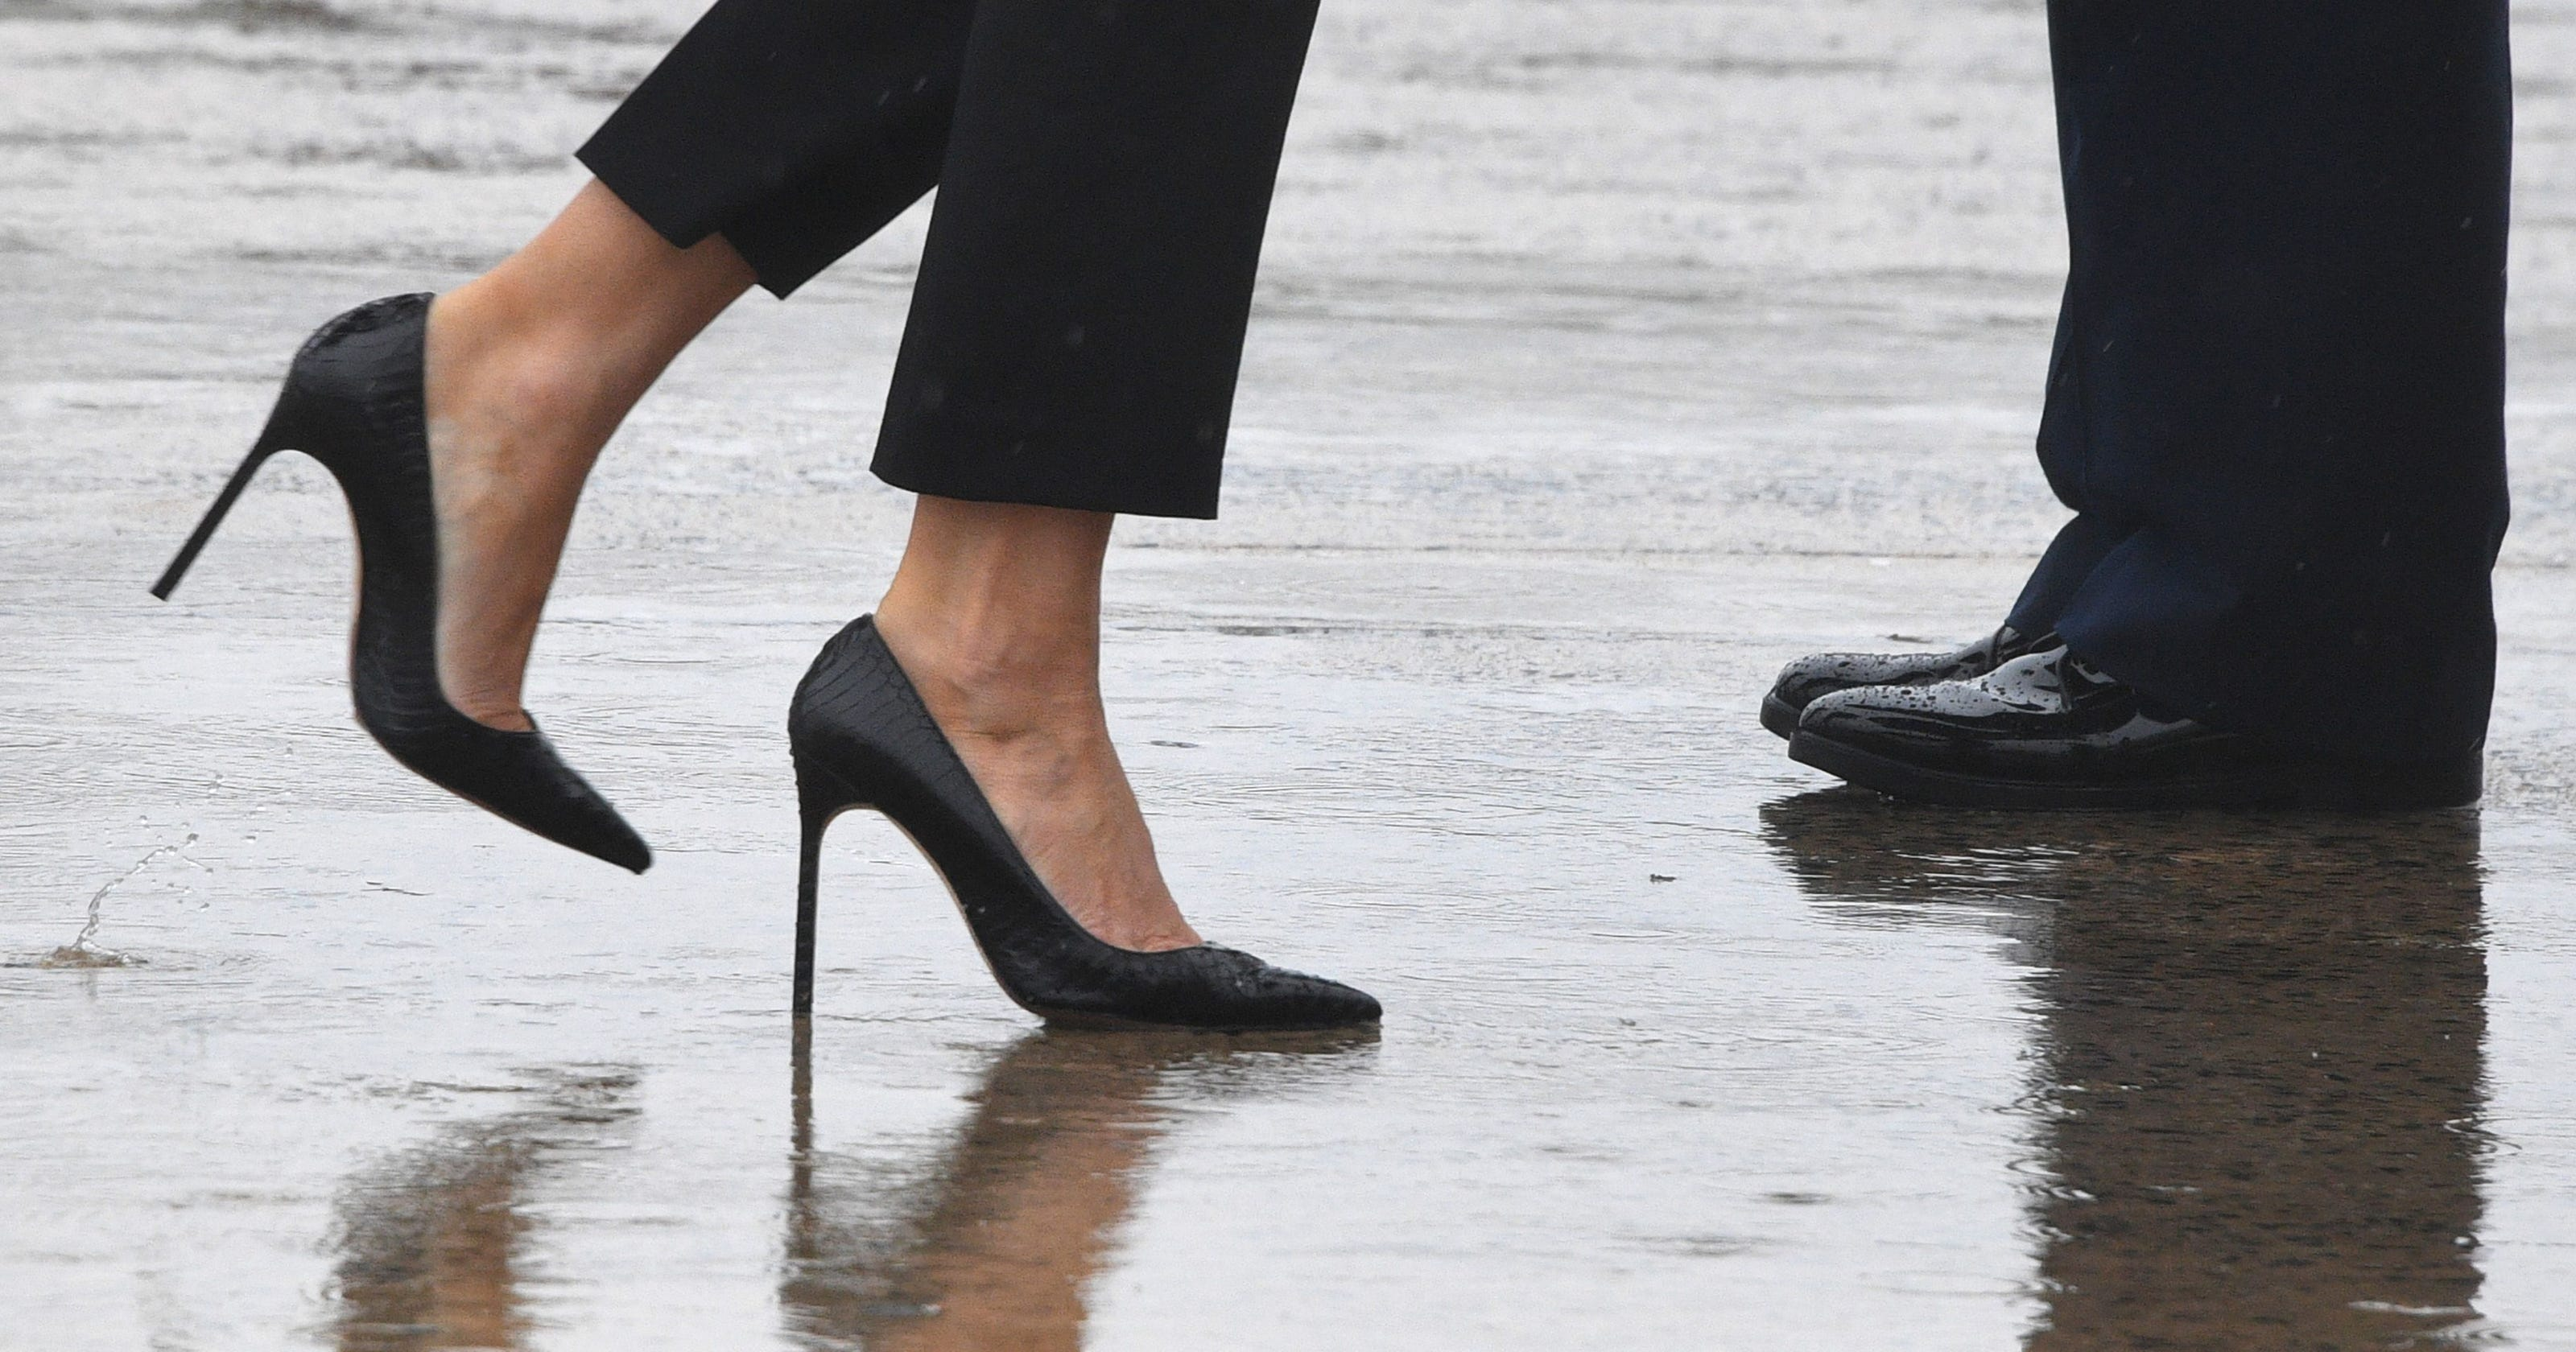 e5da3b914d0f Melania Trump swaps stilettos for sneakers and a FLOTUS cap in flooded  Texas.